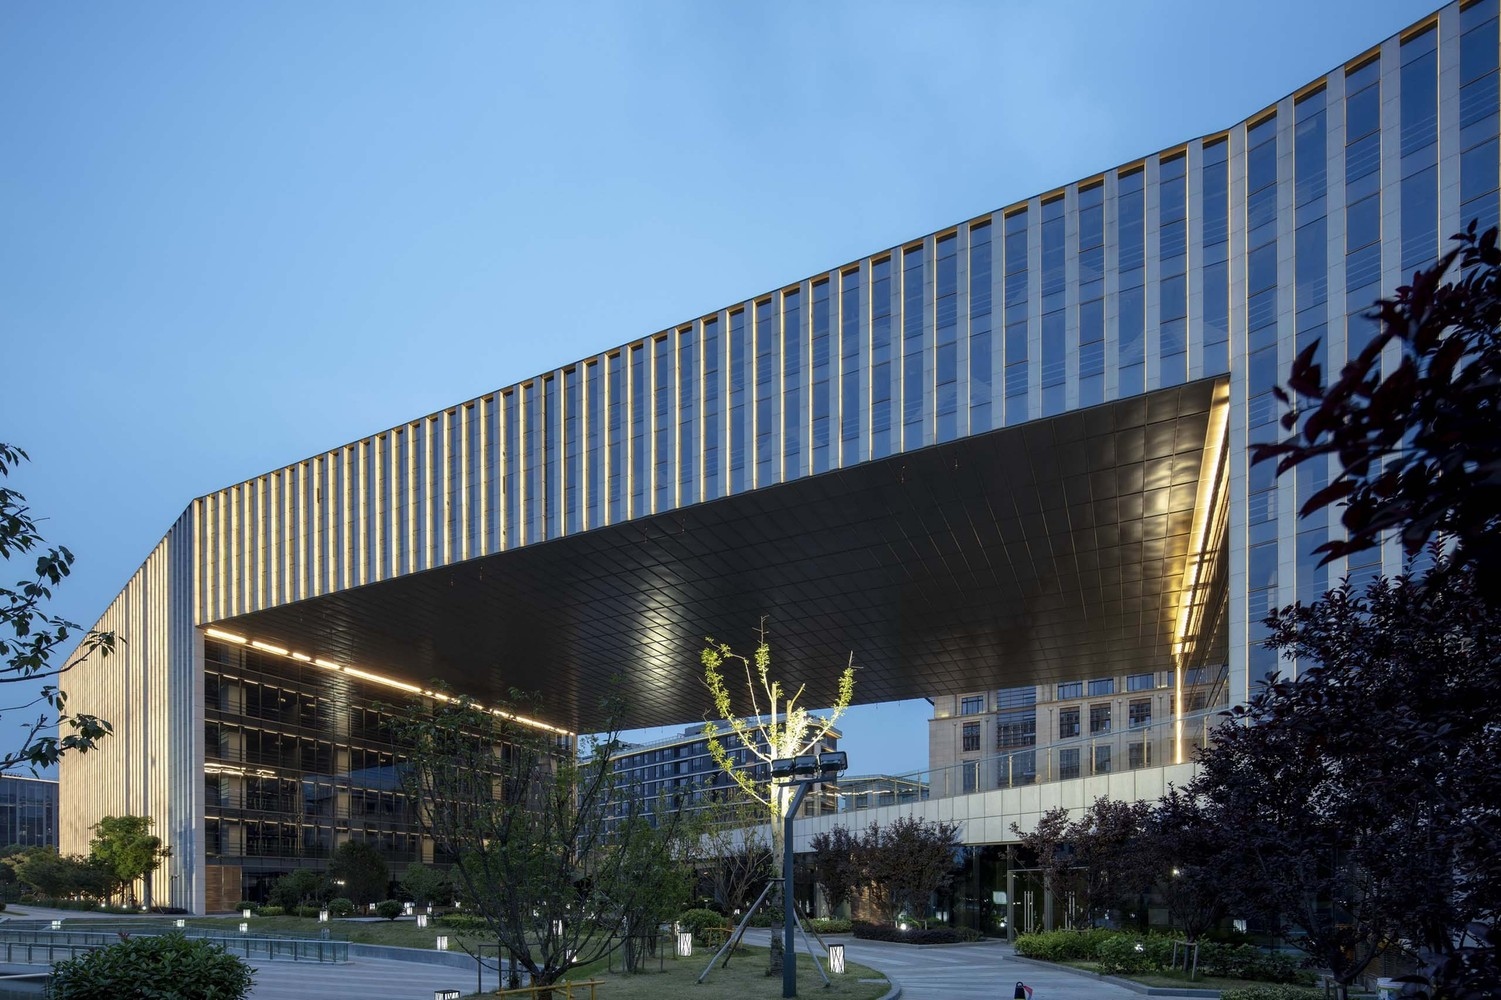 Stone louvres in changing lights. Image Courtesy of Aedas